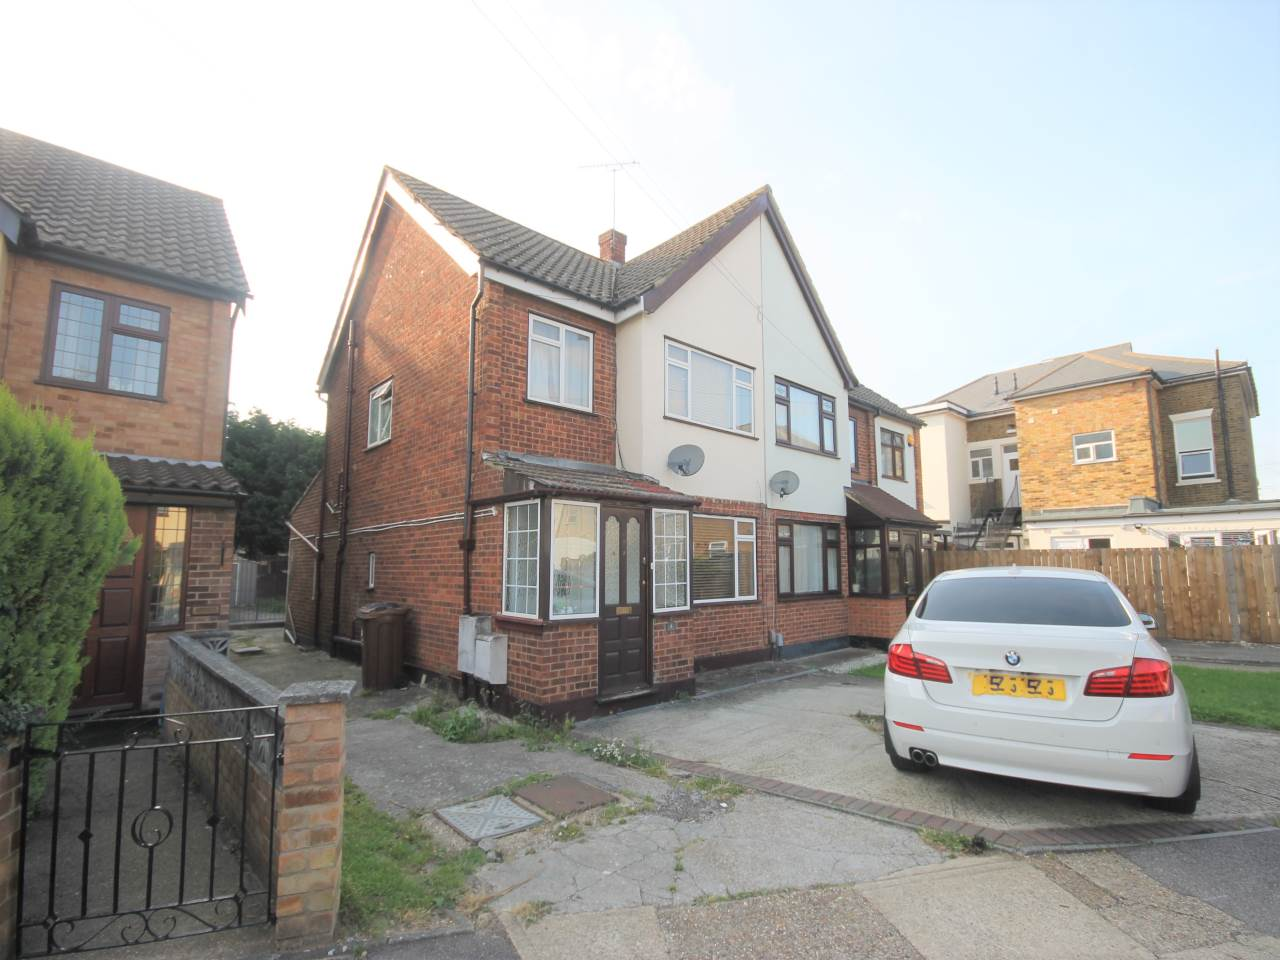 3 bed house to rent in Chadwell Heath, RM6